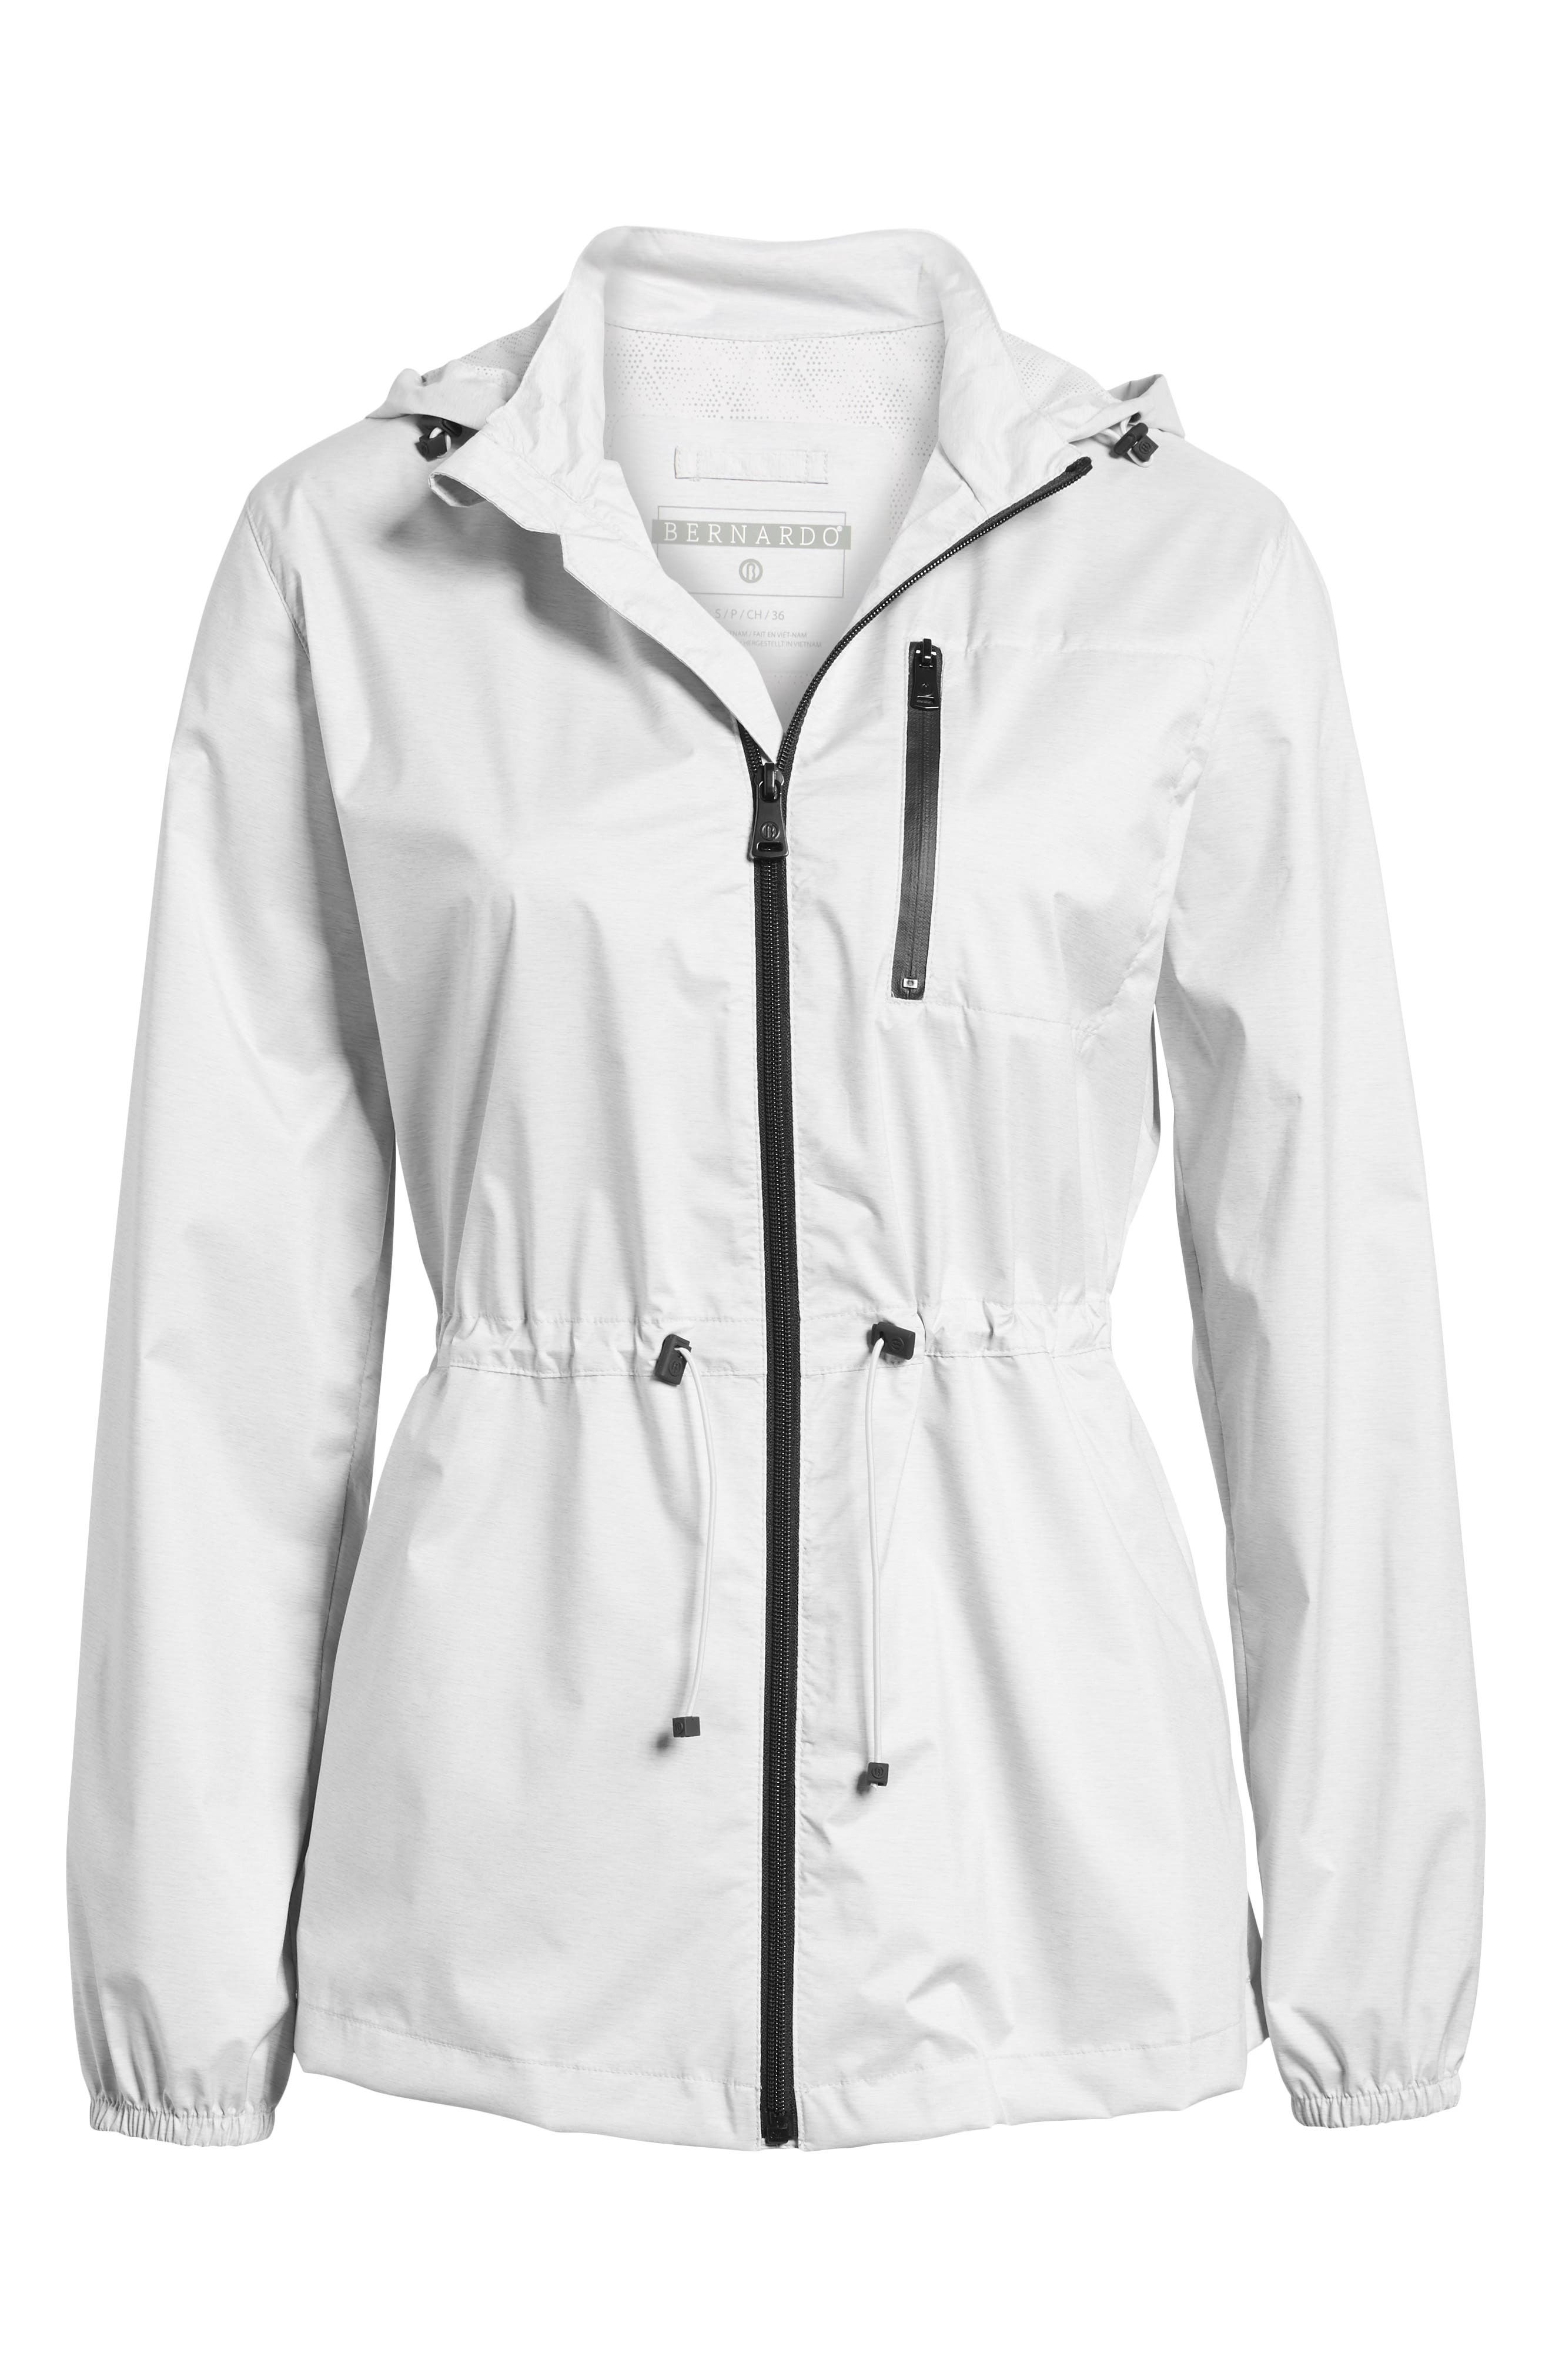 Microbreathable Hooded Water Resistant Jacket,                             Alternate thumbnail 5, color,                             073